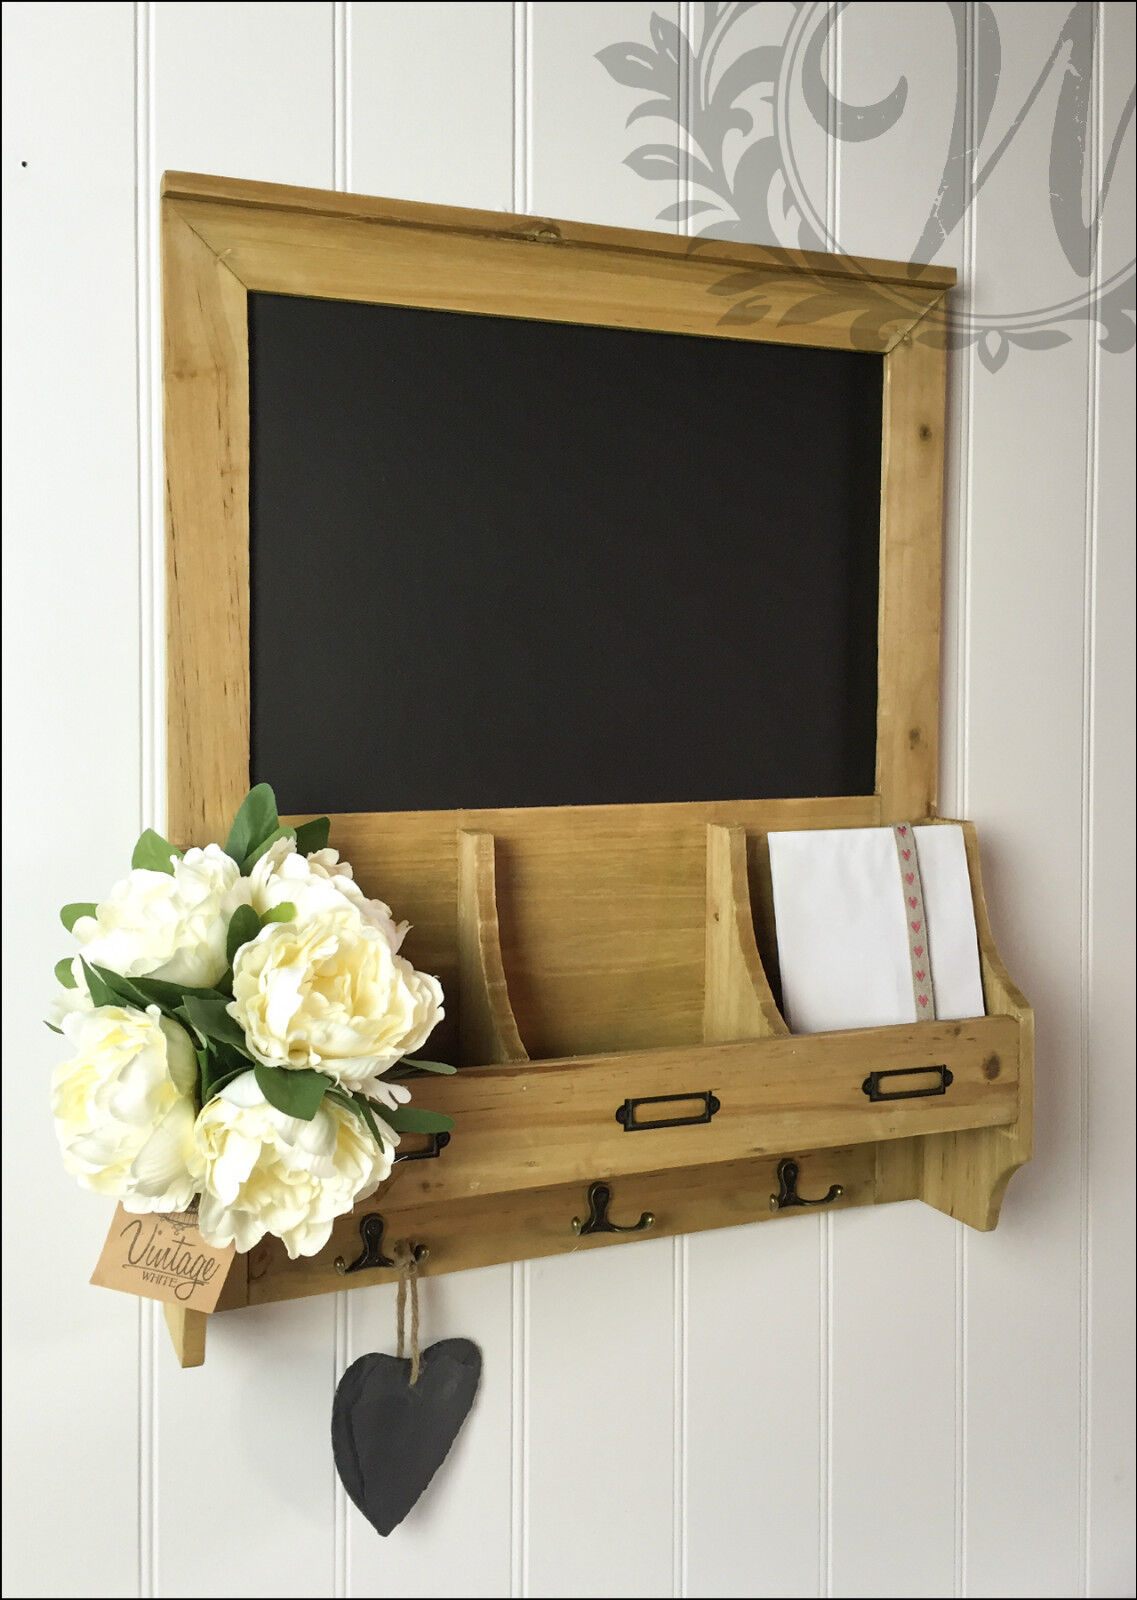 Vintage Blackboard Shabby Chic Memo Notice Wooden Chalk